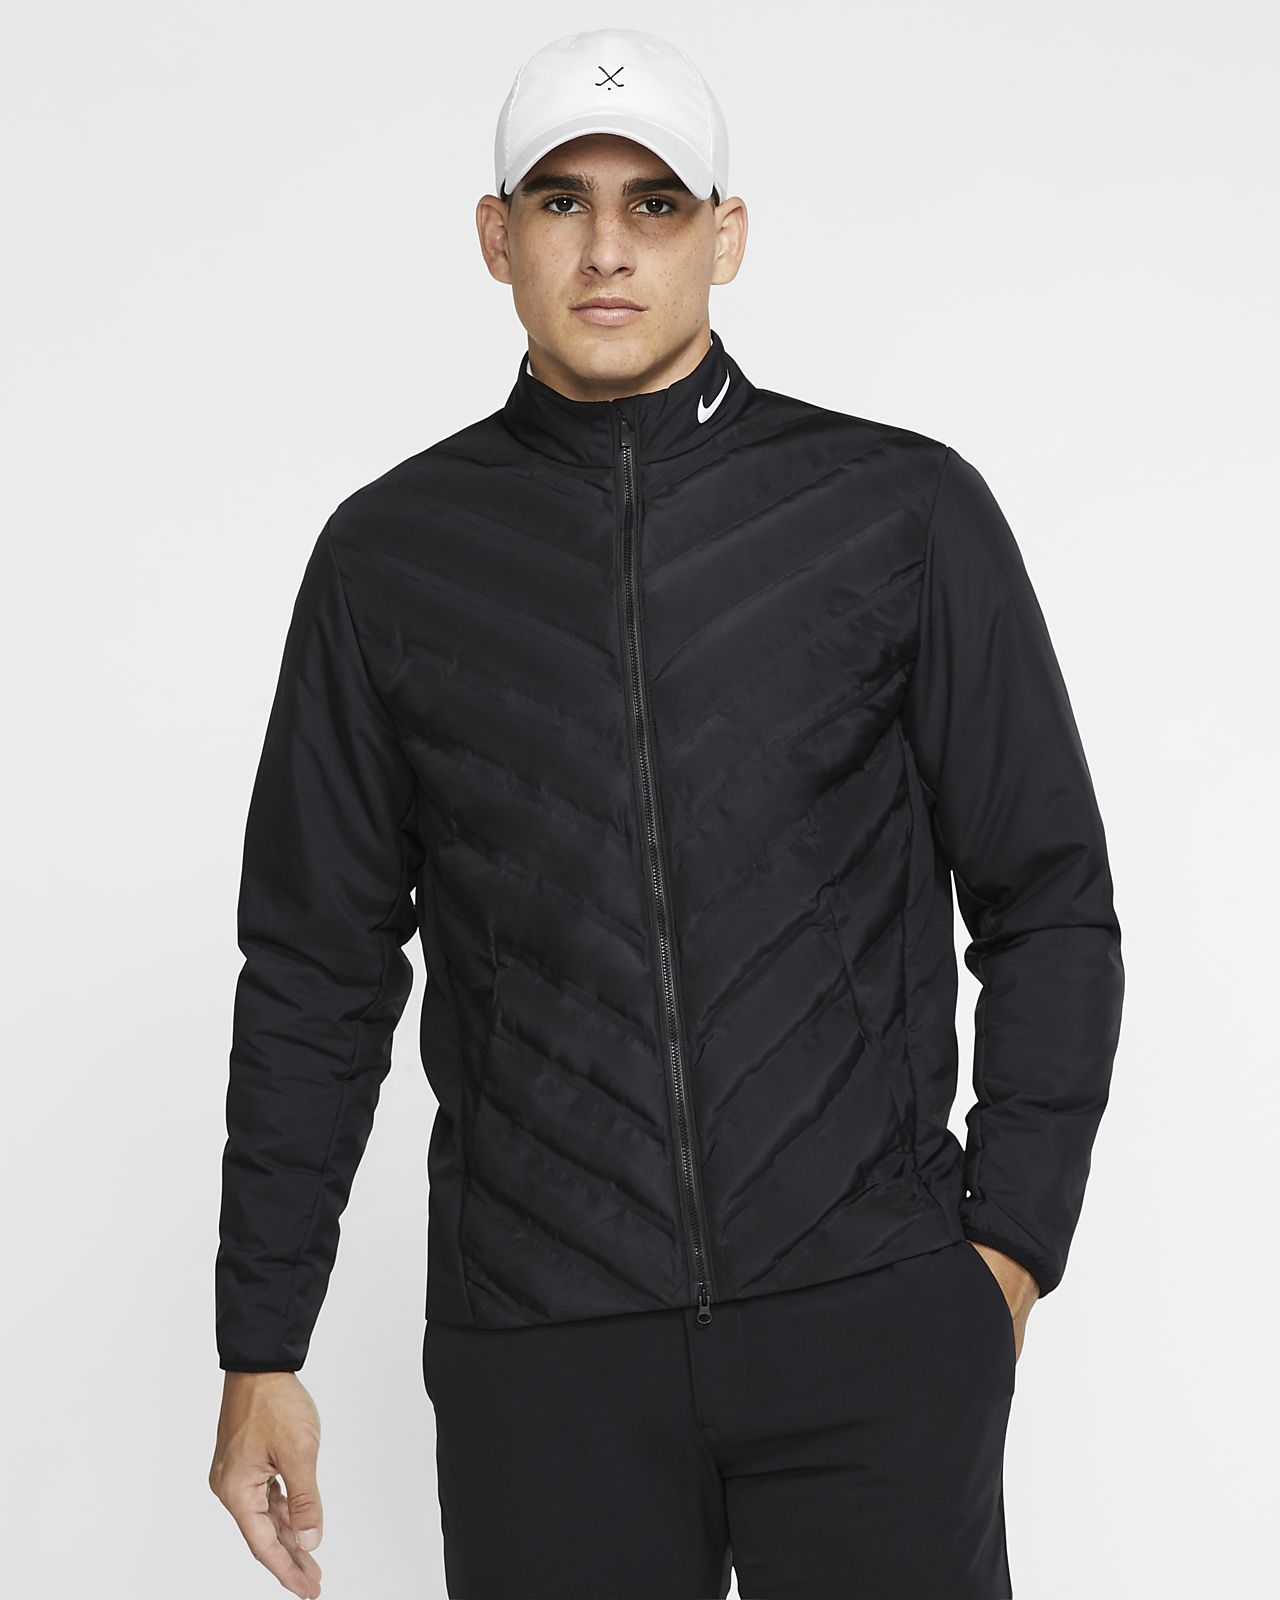 Nike AeroLoft Repel Men's Golf Jacket